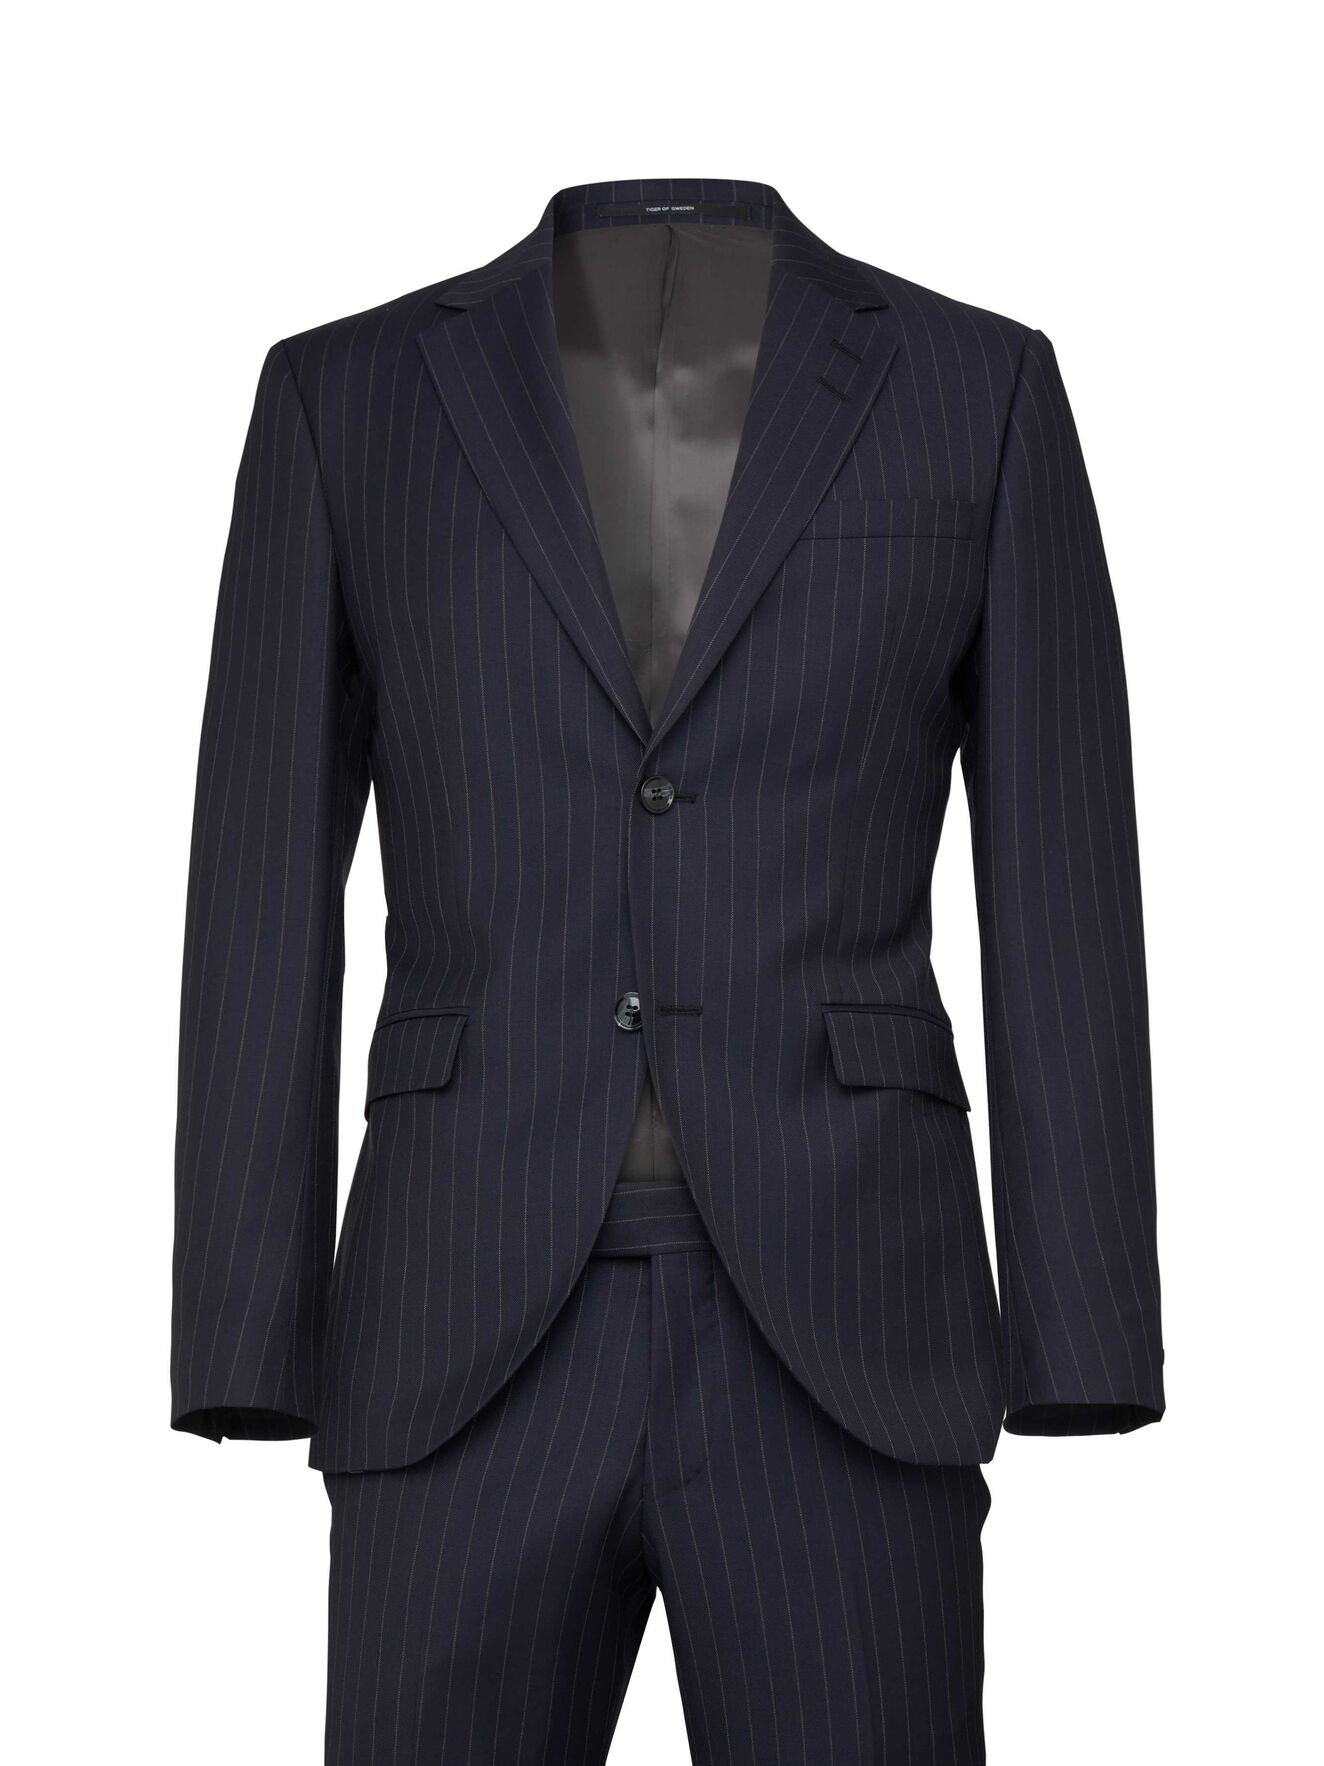 Lamonte Suit in Sky Captain from Tiger of Sweden